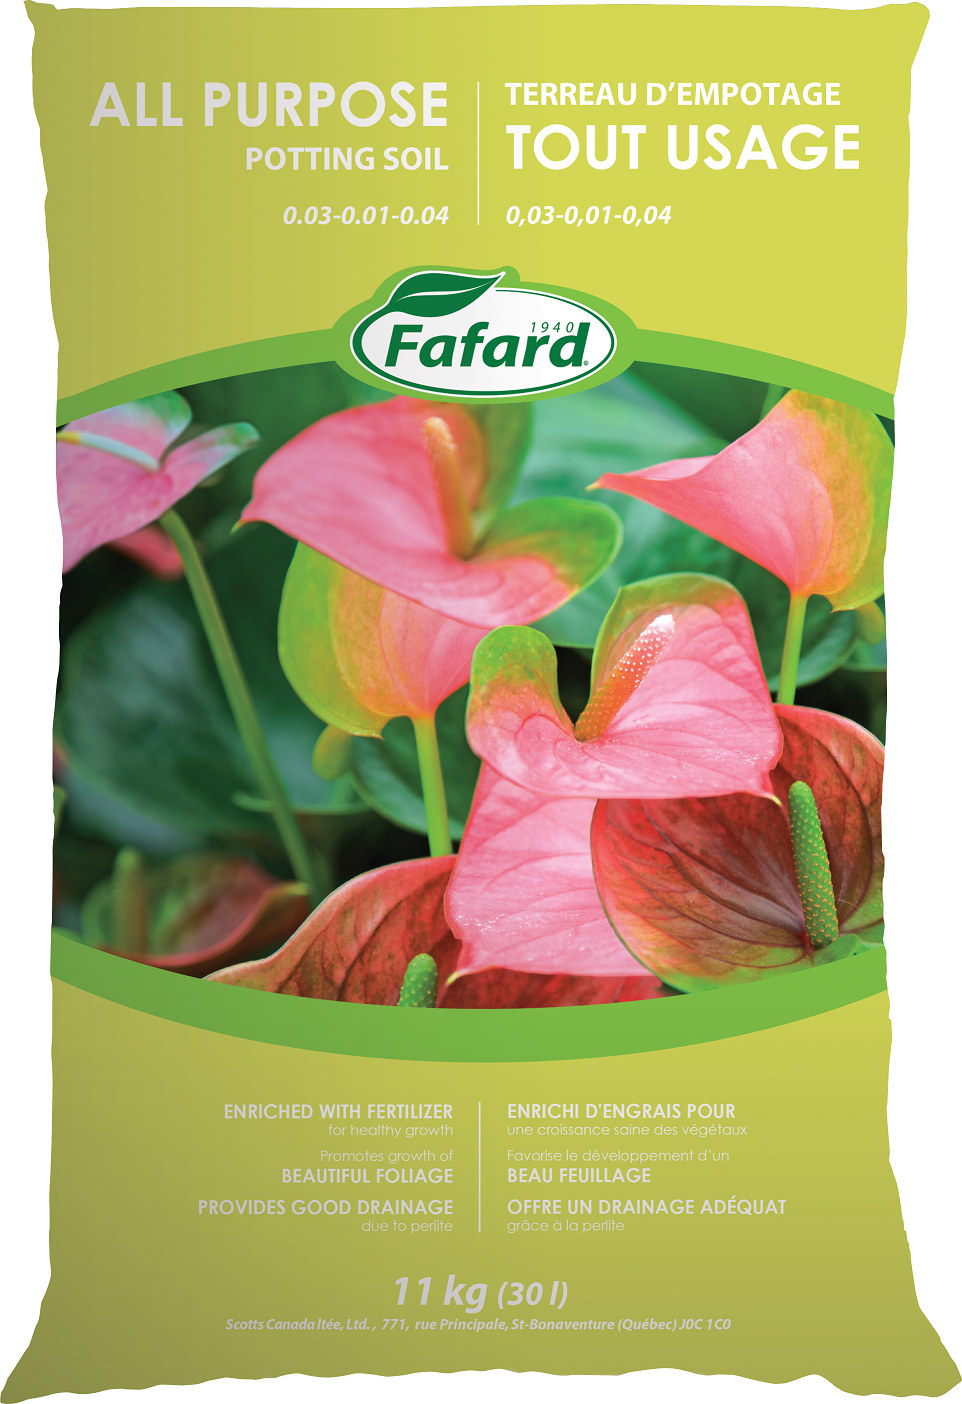 All Purpose Potting Soil 30 L - Four Seasons Garden Centre